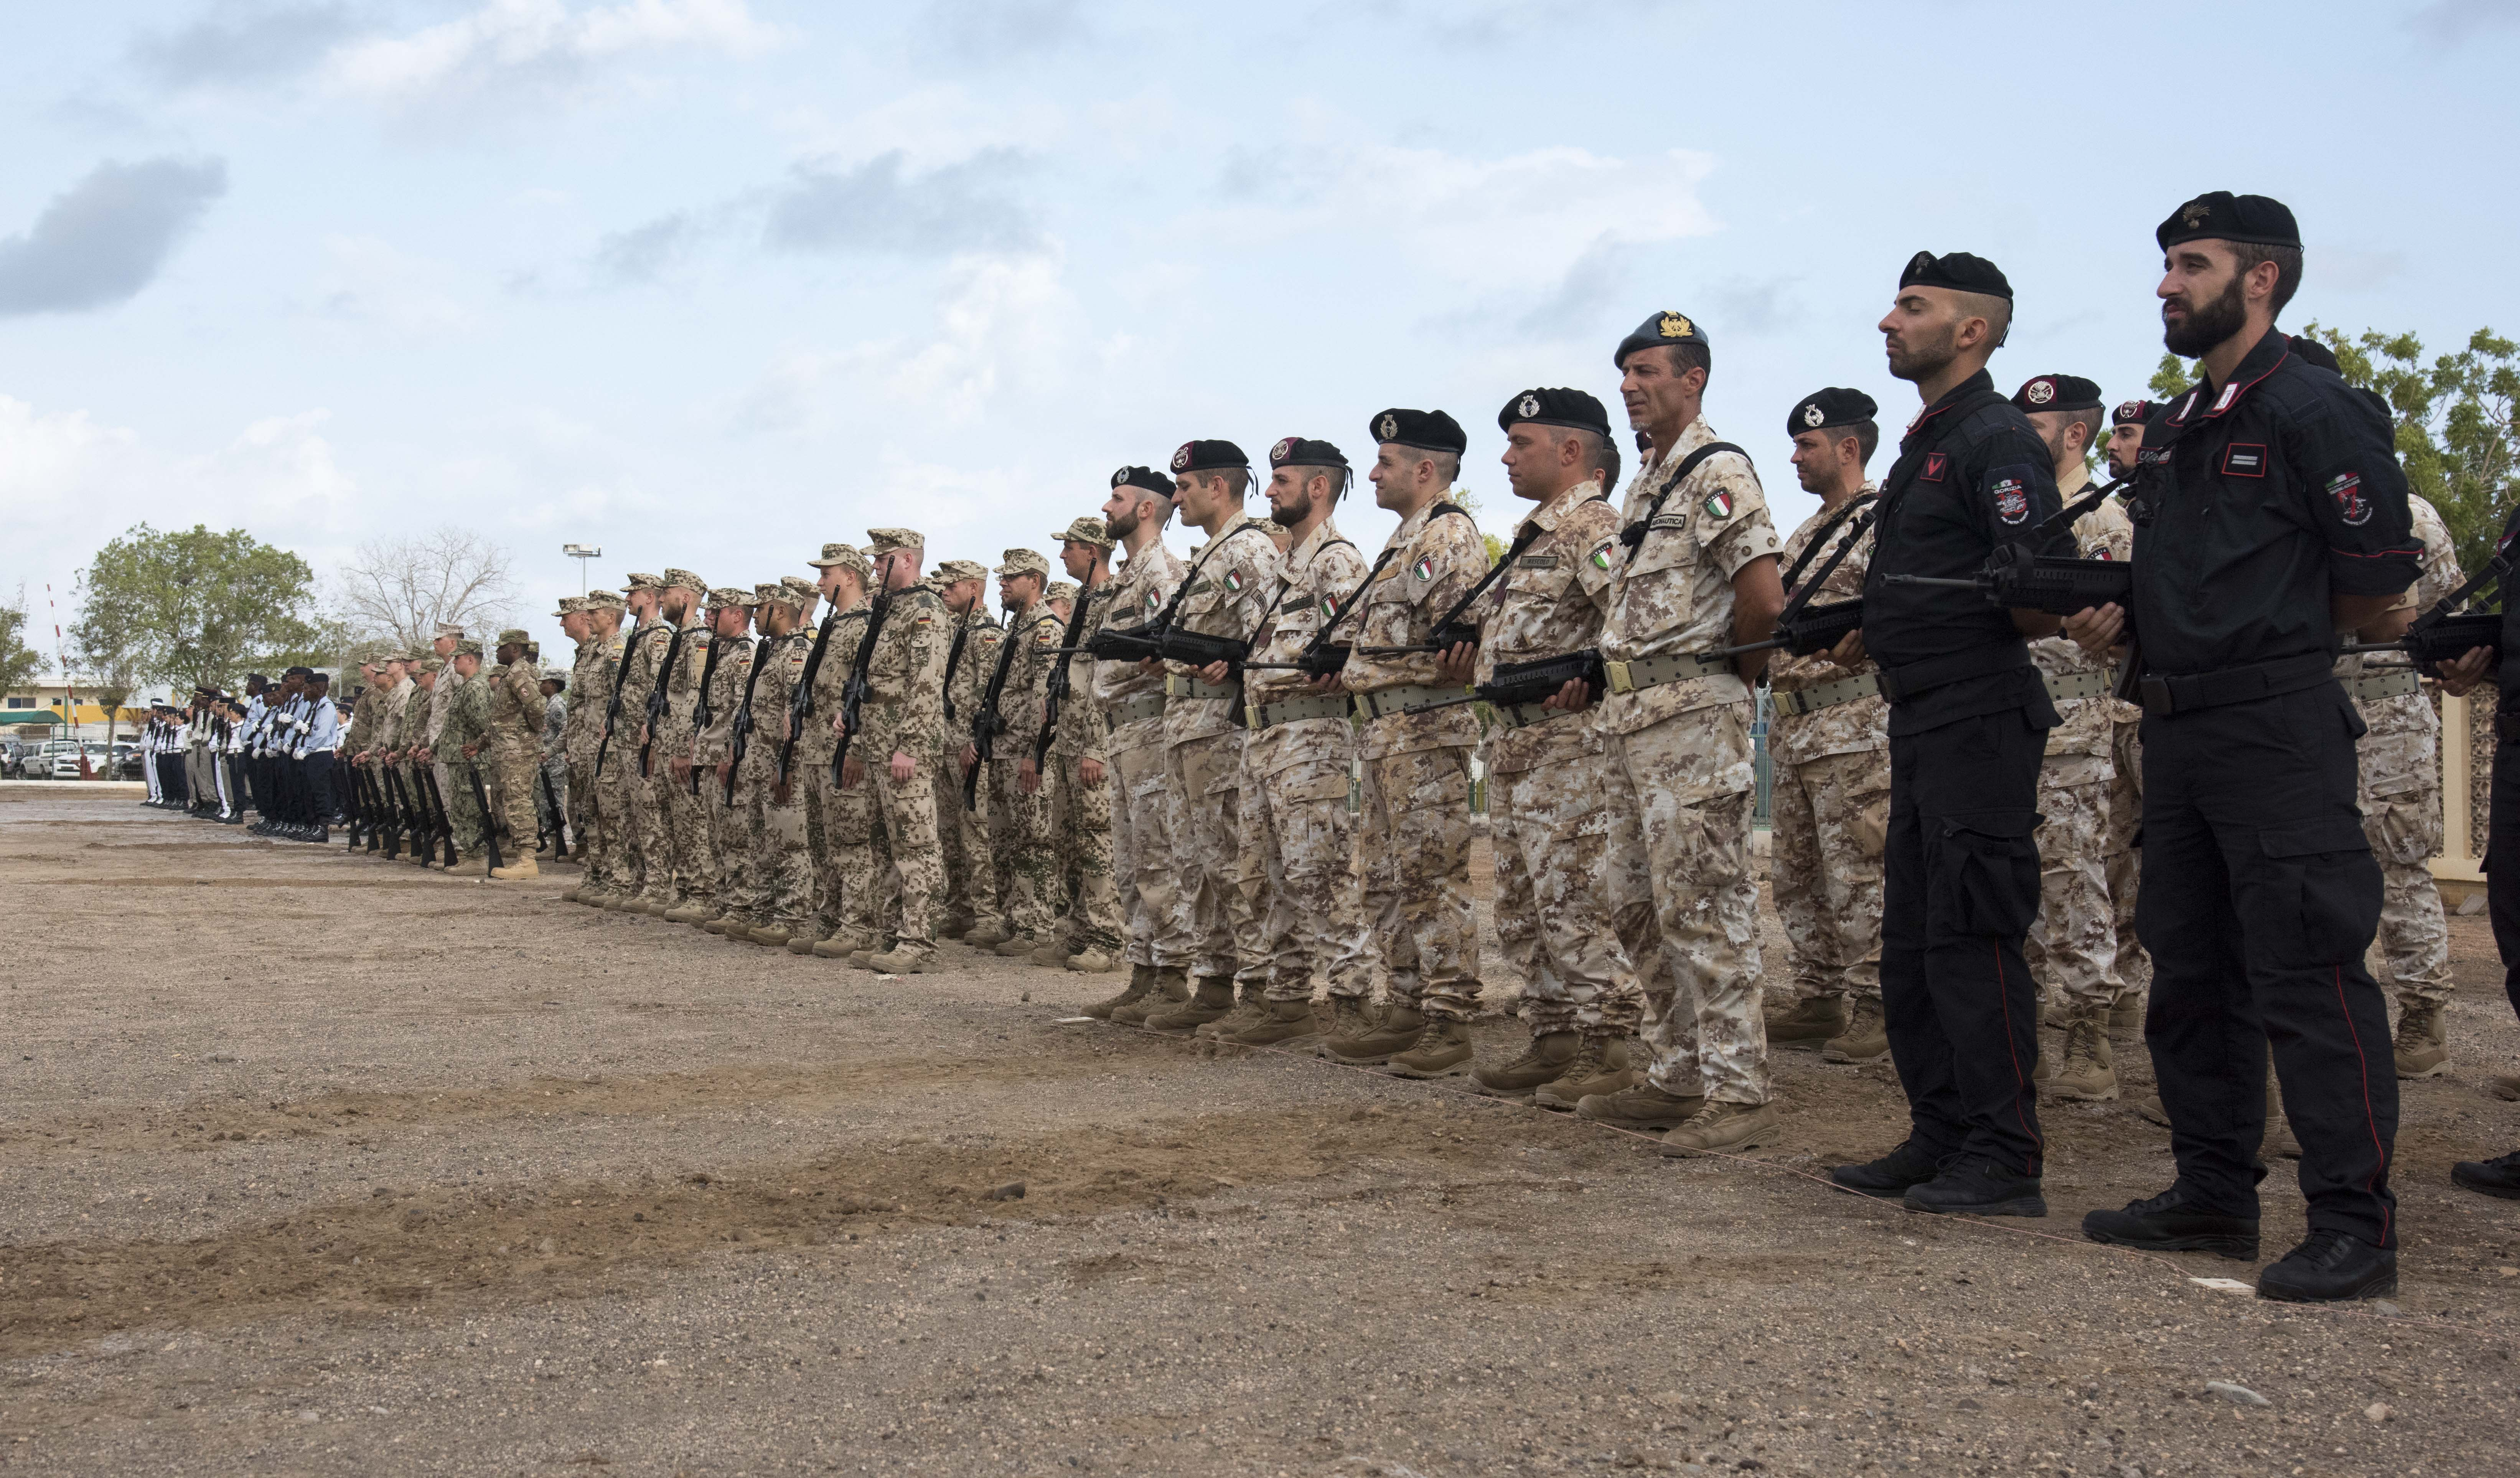 Troops stand in formation during the Armistice Day ceremony at the French Marine Base, Nov. 11, 2015. Participants stationed in Djibouti from seven countries joined the ceremony commemorating the end of World War I.